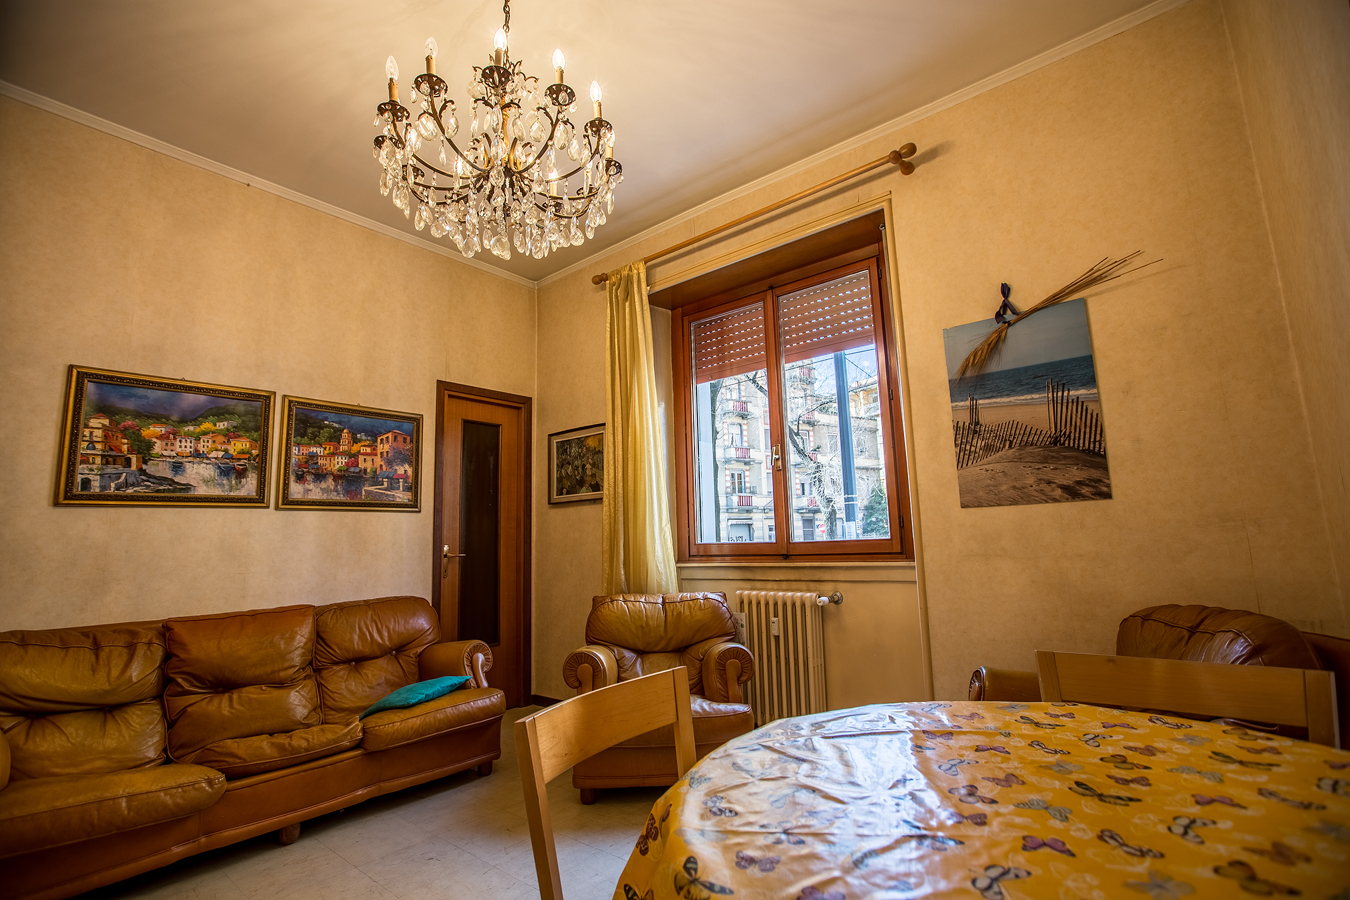 Student Apartment for rent in Via Giovanni Pacini, 62, 0° floor, in Milano, Italy